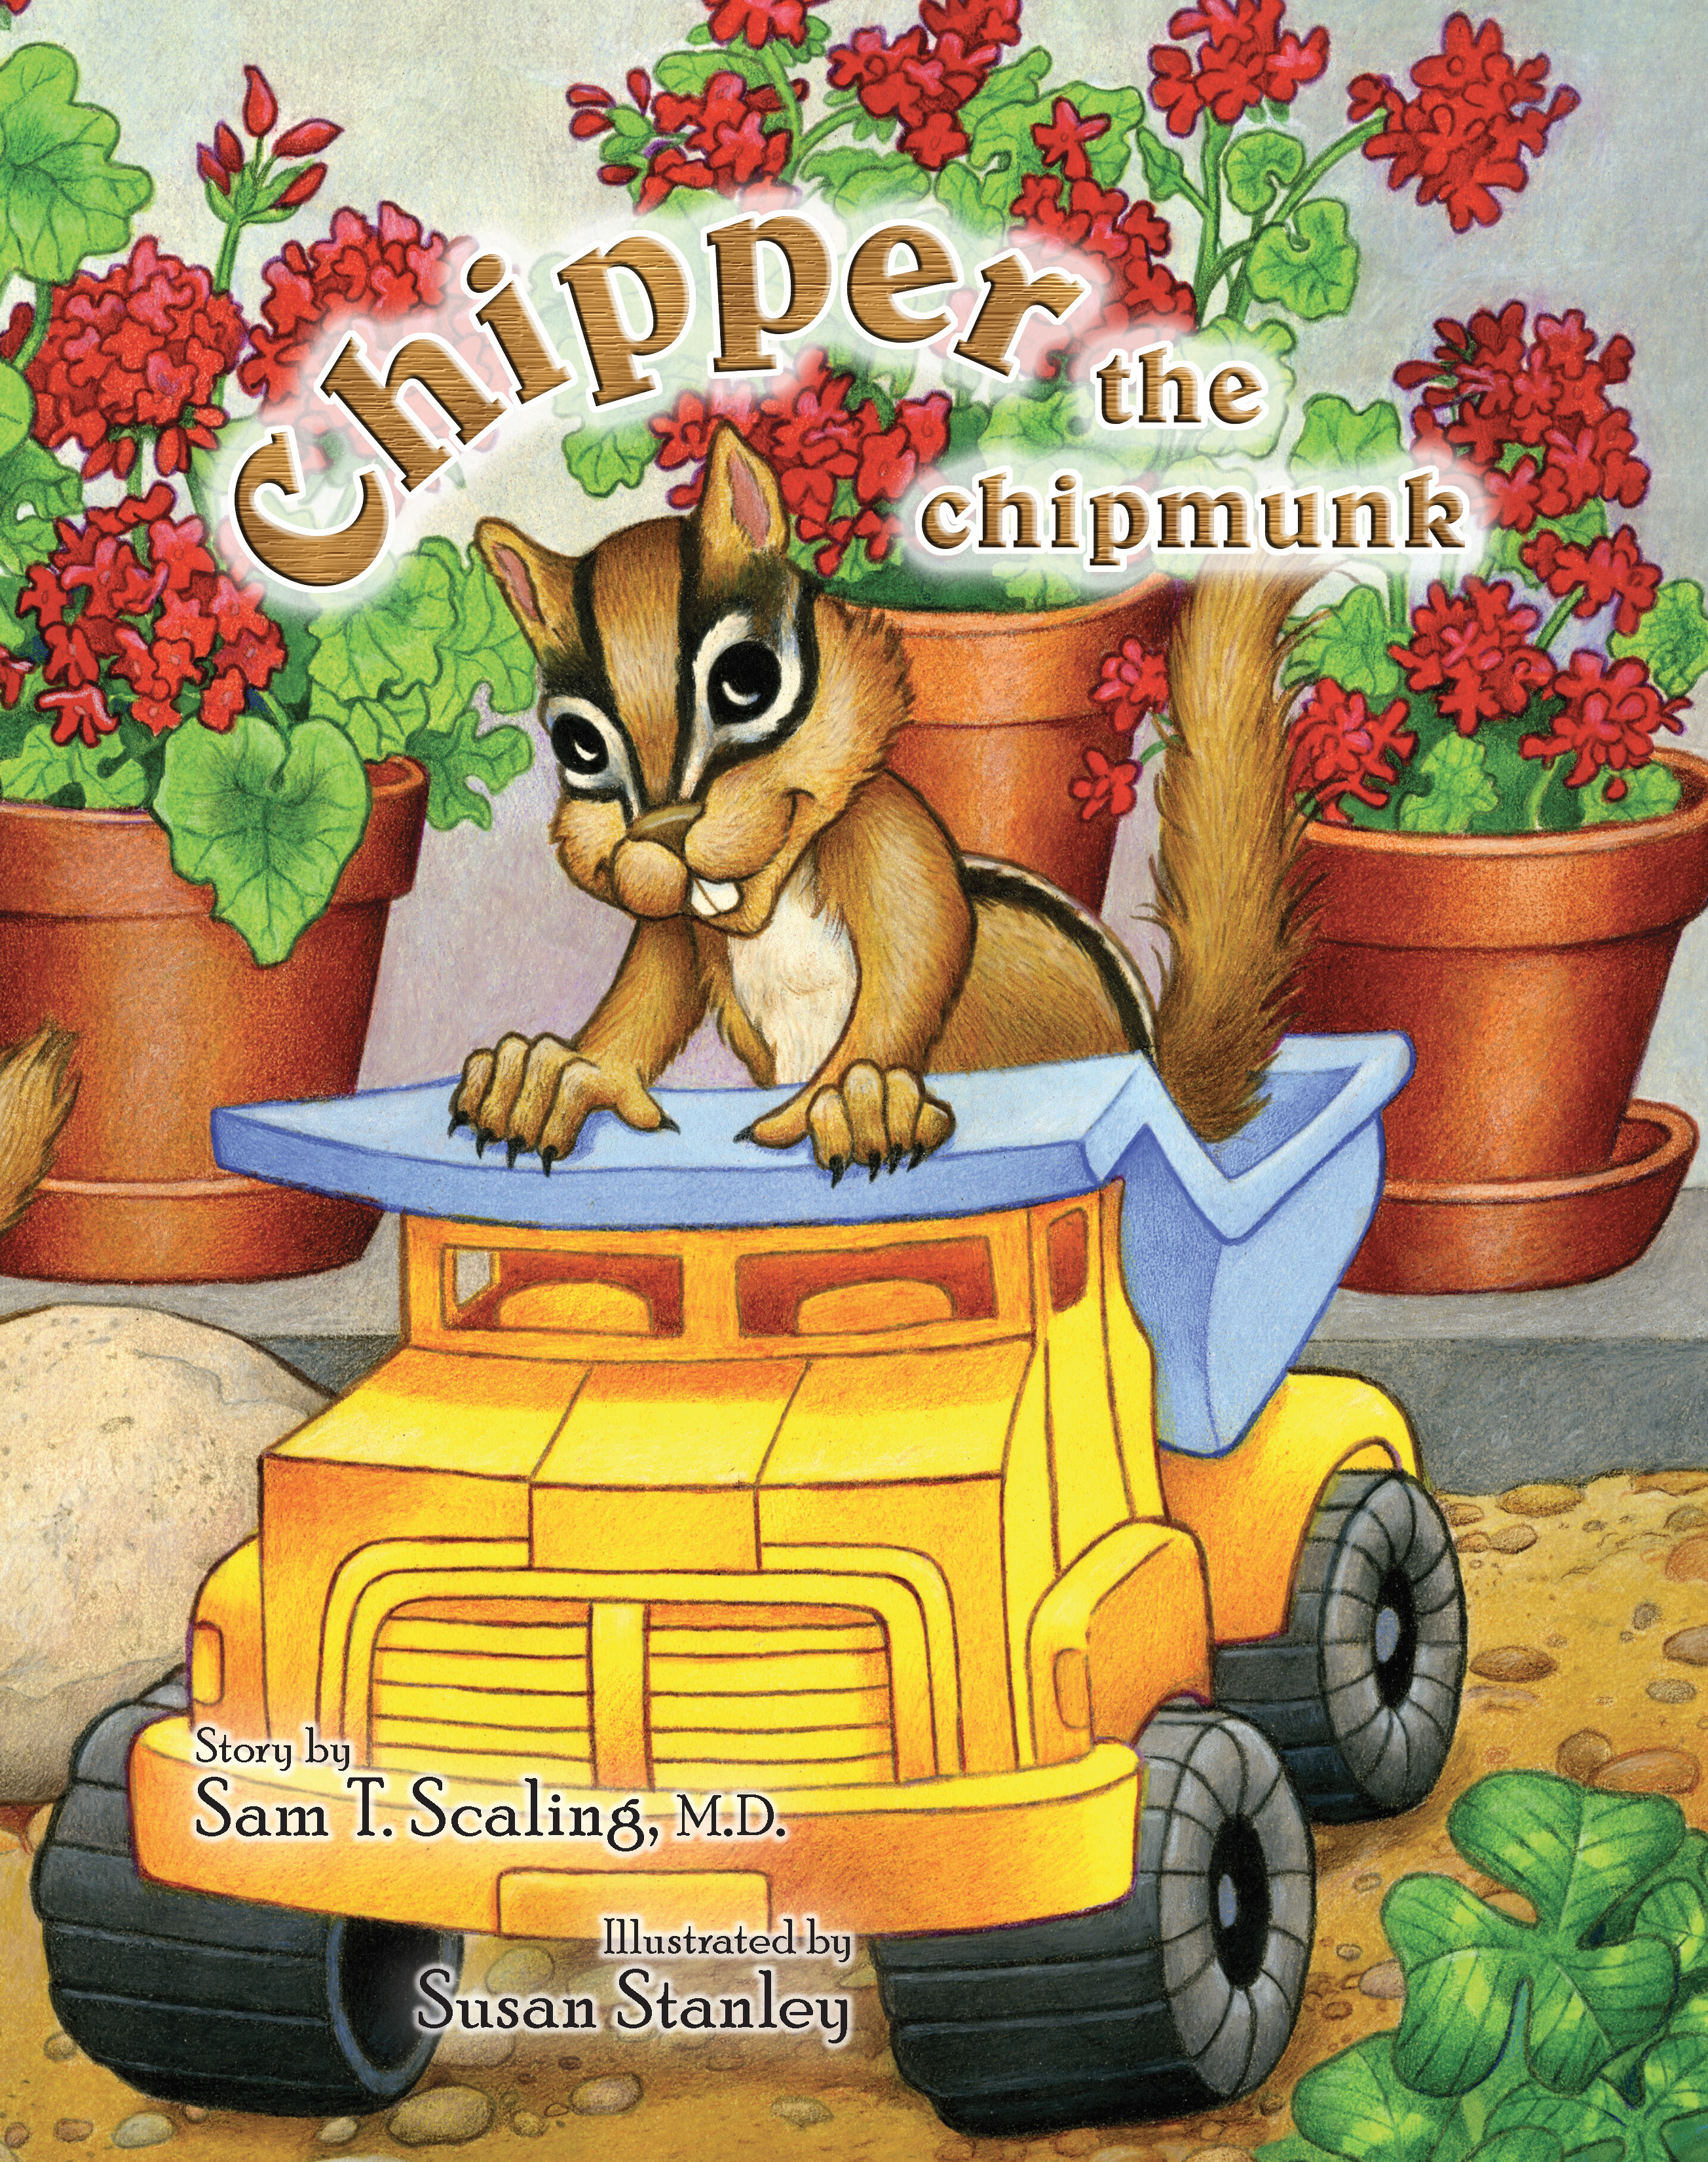 Chipper the Chimpmunkhttps://www.endeavorbooks.com/product/chipper-the-chipmunk/